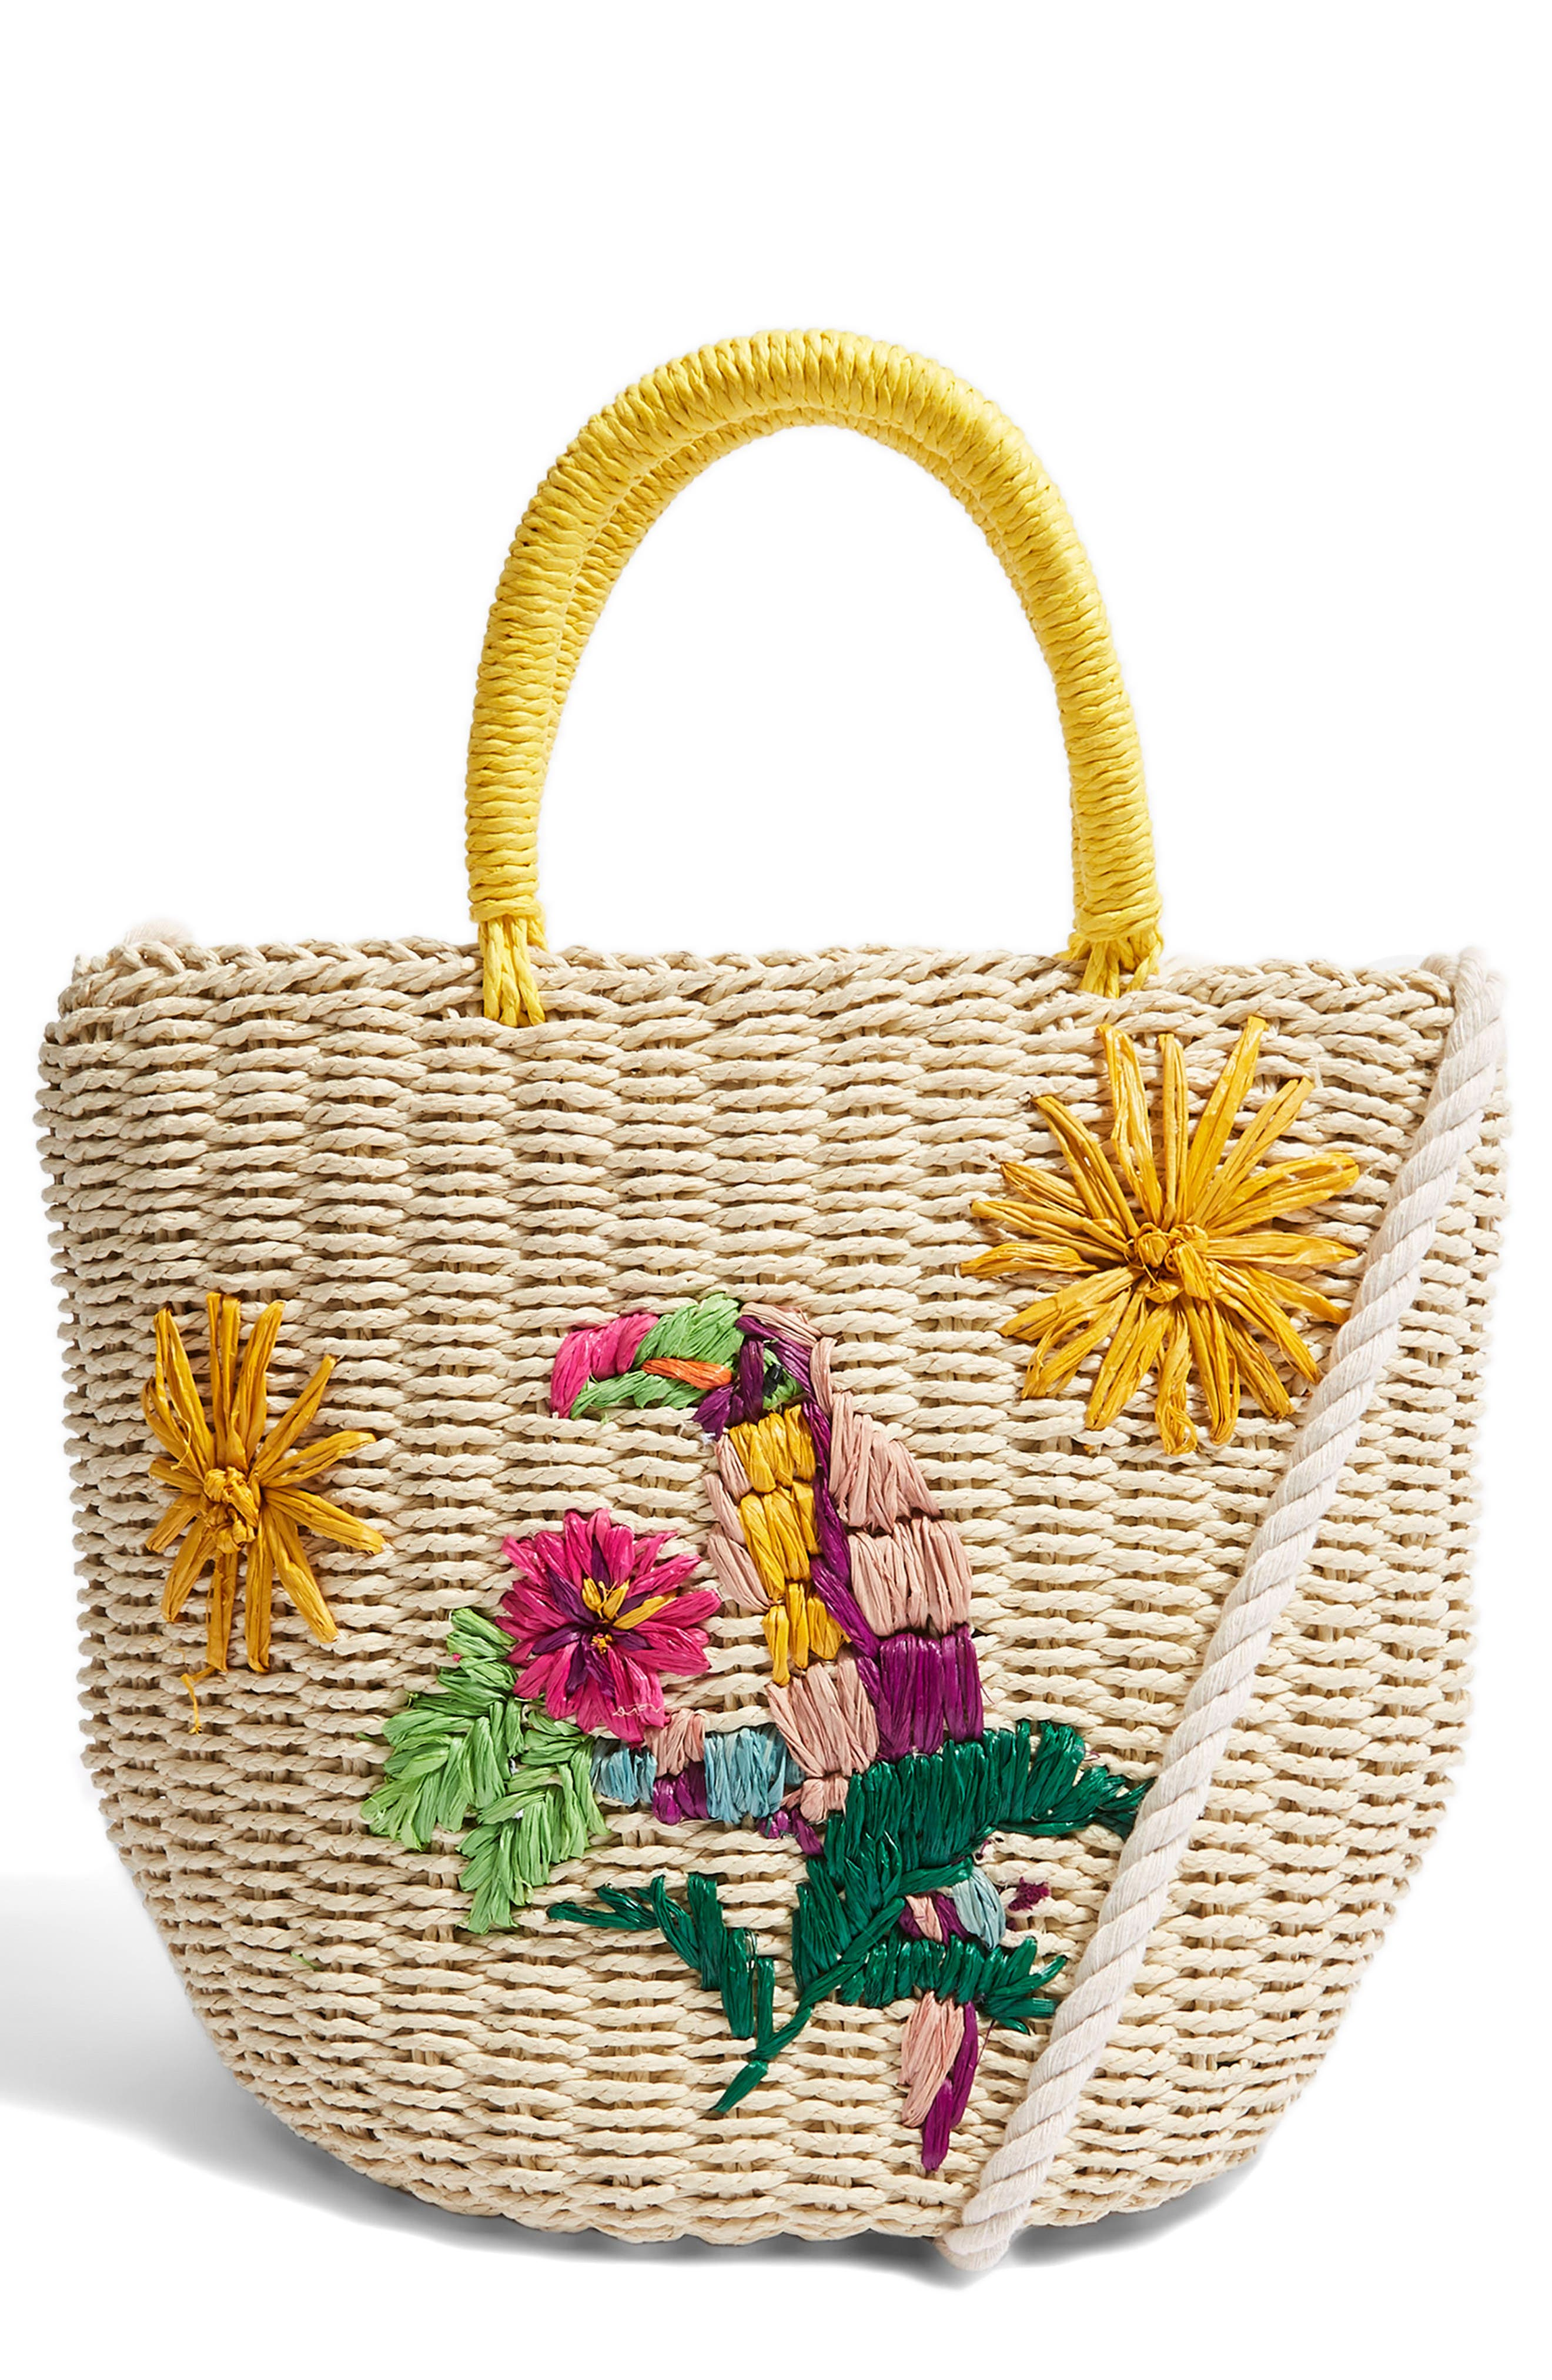 Betsy Toucan Straw Bag,                             Main thumbnail 1, color,                             Nude Multi